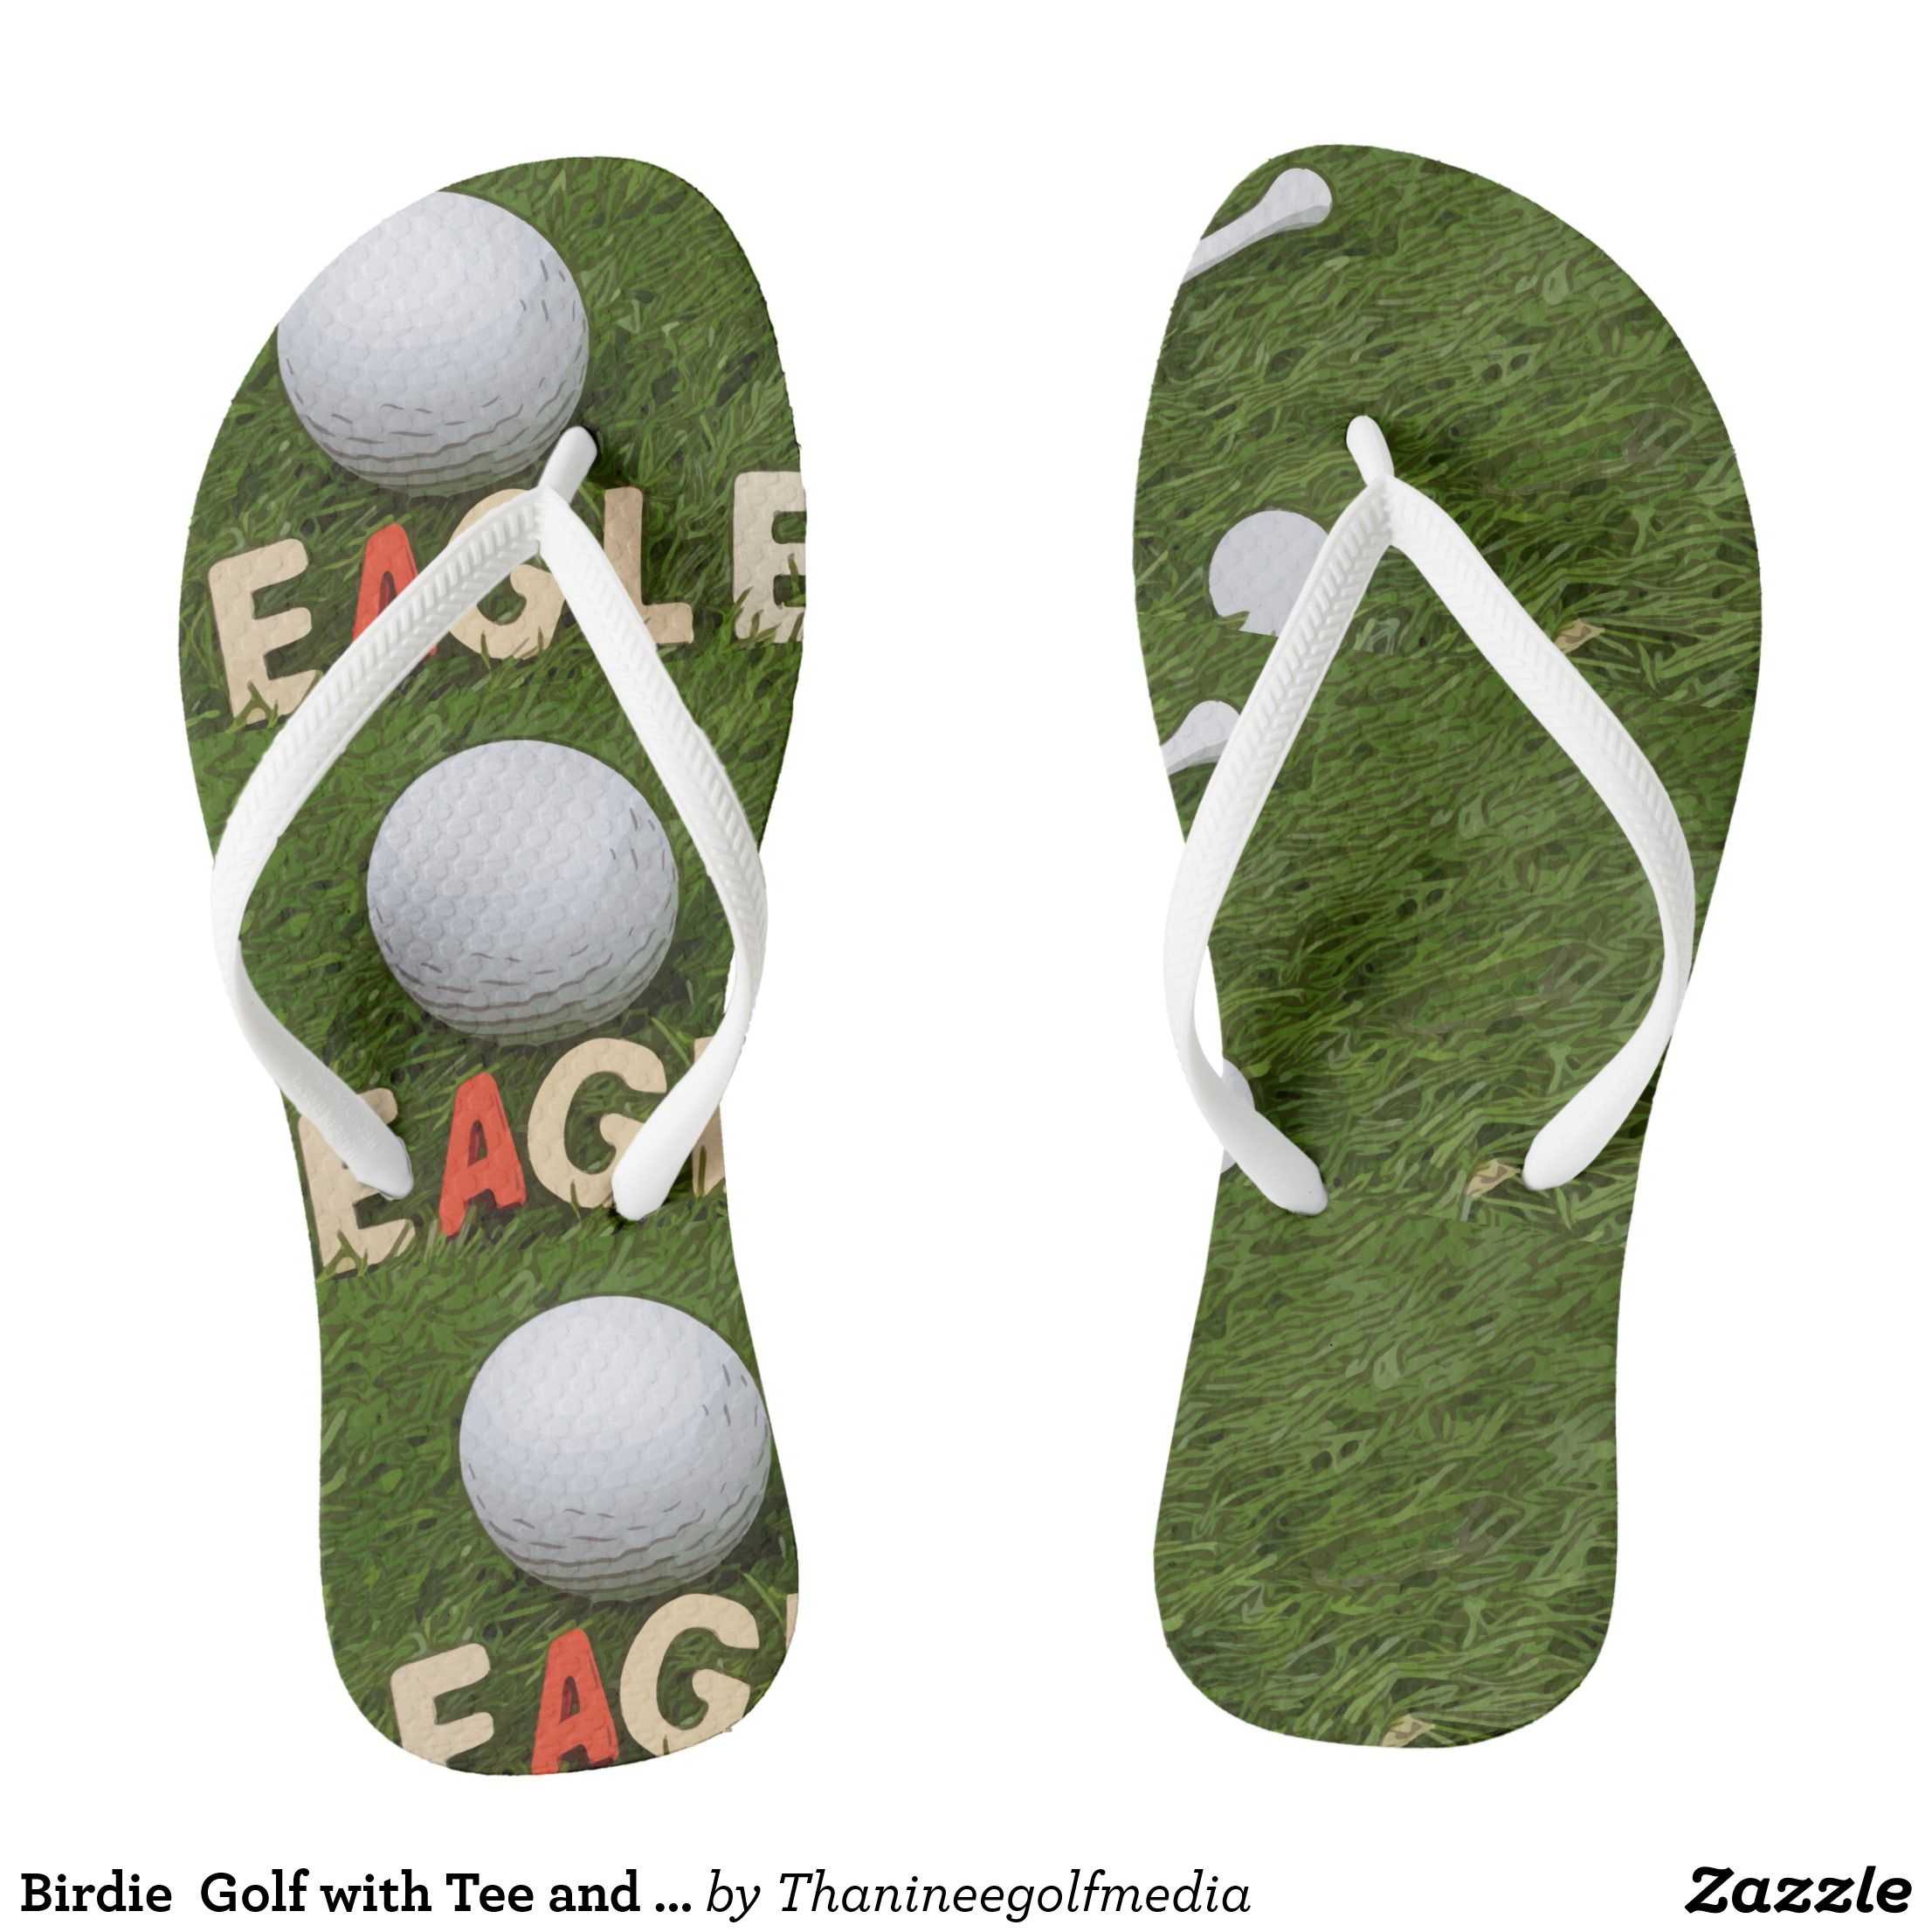 3997adbe2826 Birdie Golf with Tee and Marker Flip Flops - Canvas-Top Rubber-Sole  Athletic Shoes By Talented Fashion And Graphic Designers -  shoes  sneakers   footwear ...